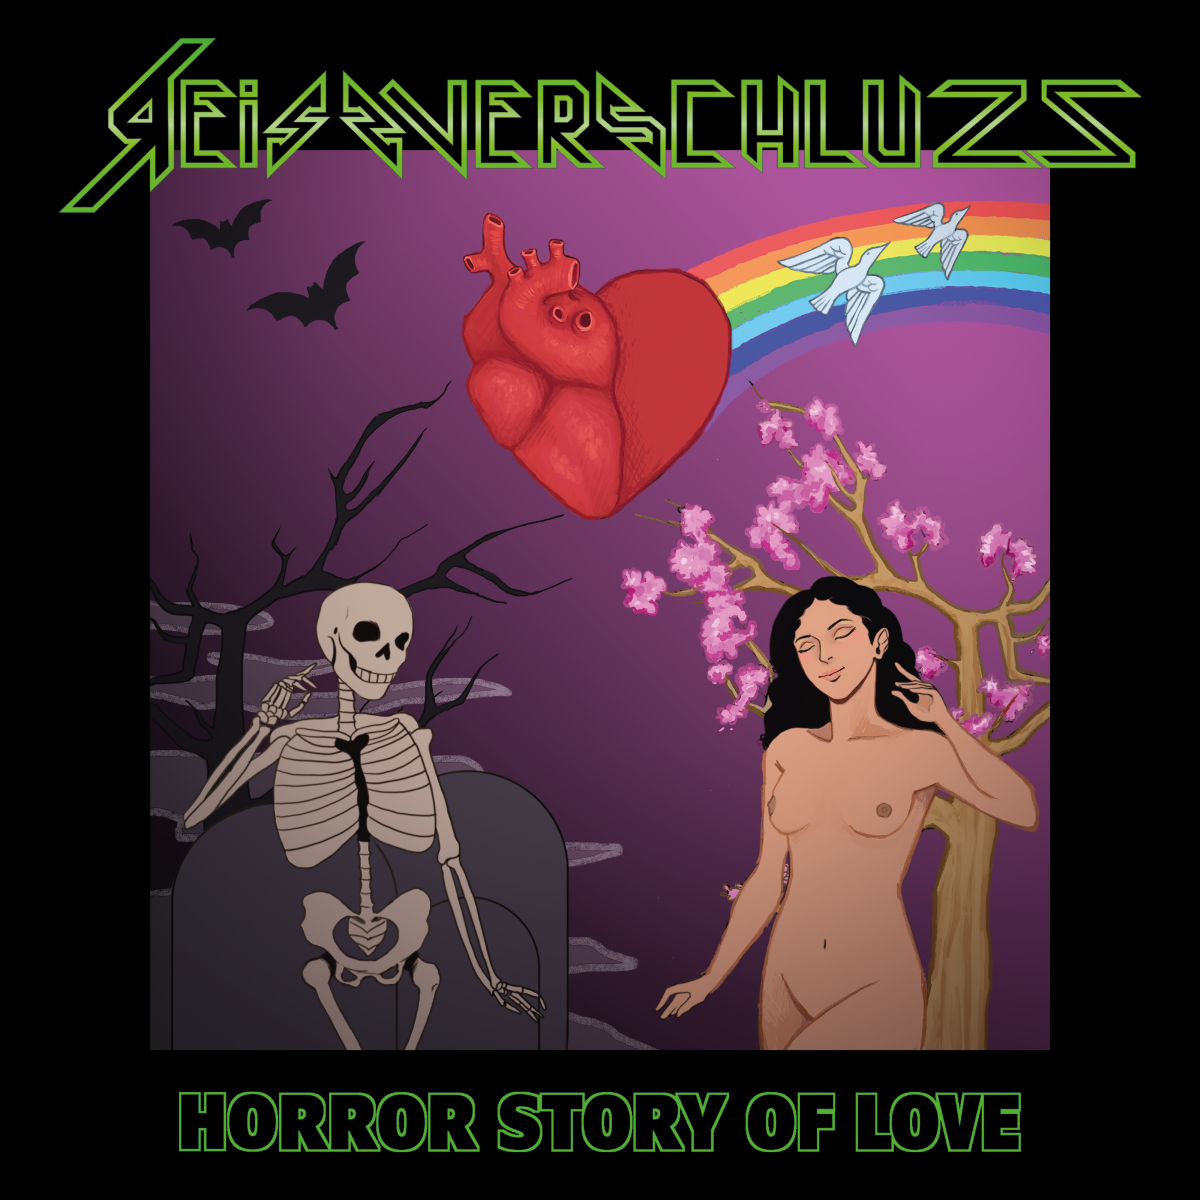 Reissverschluzz - Horror Story of Love (Album-Cover)